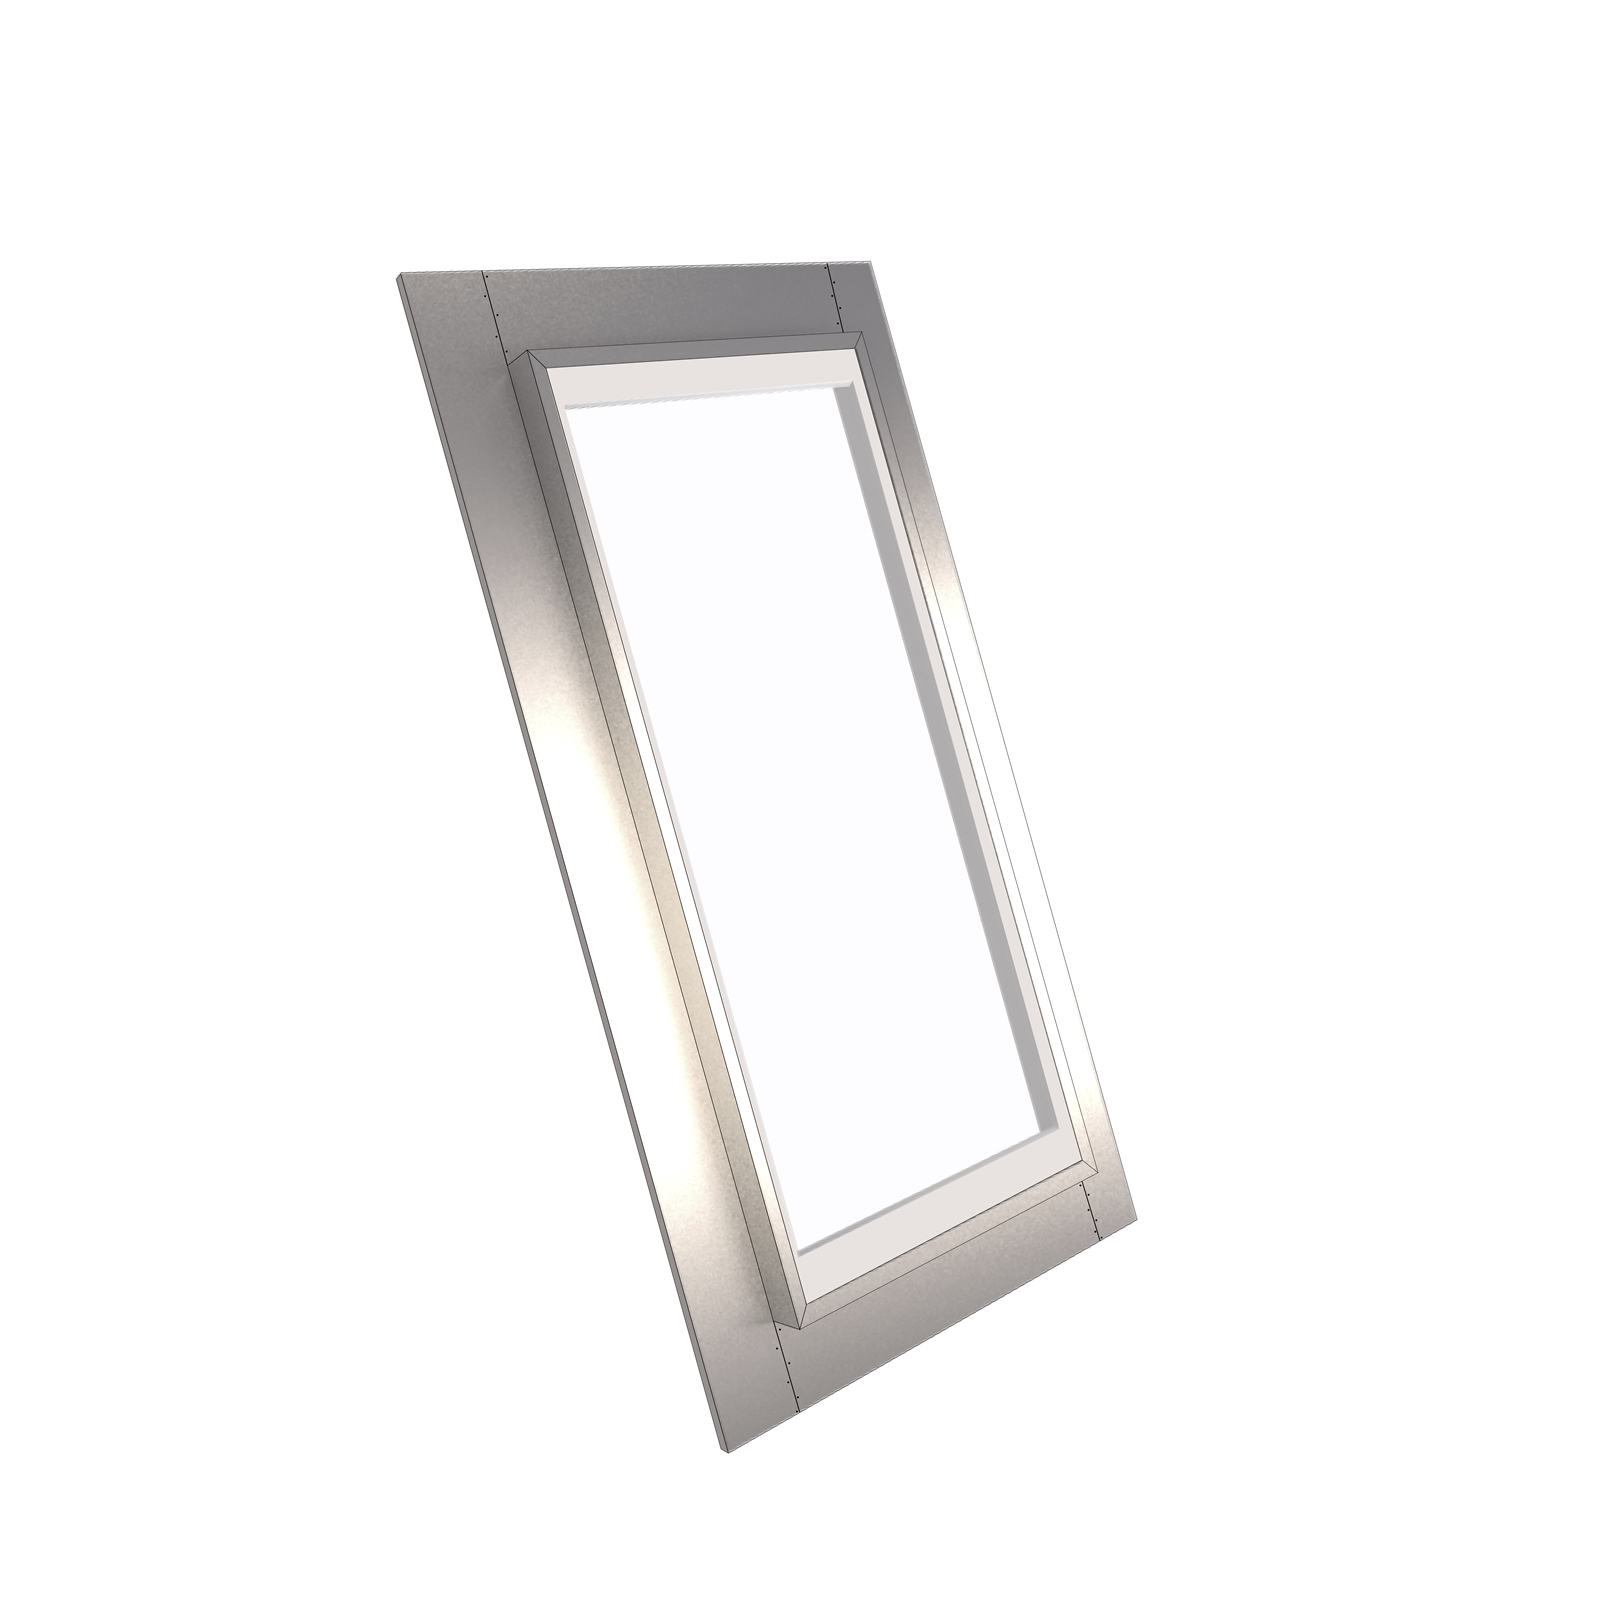 EzyLite 1000 x 550mm Fixed Roof Window For Tiled Roof - Smart Glass